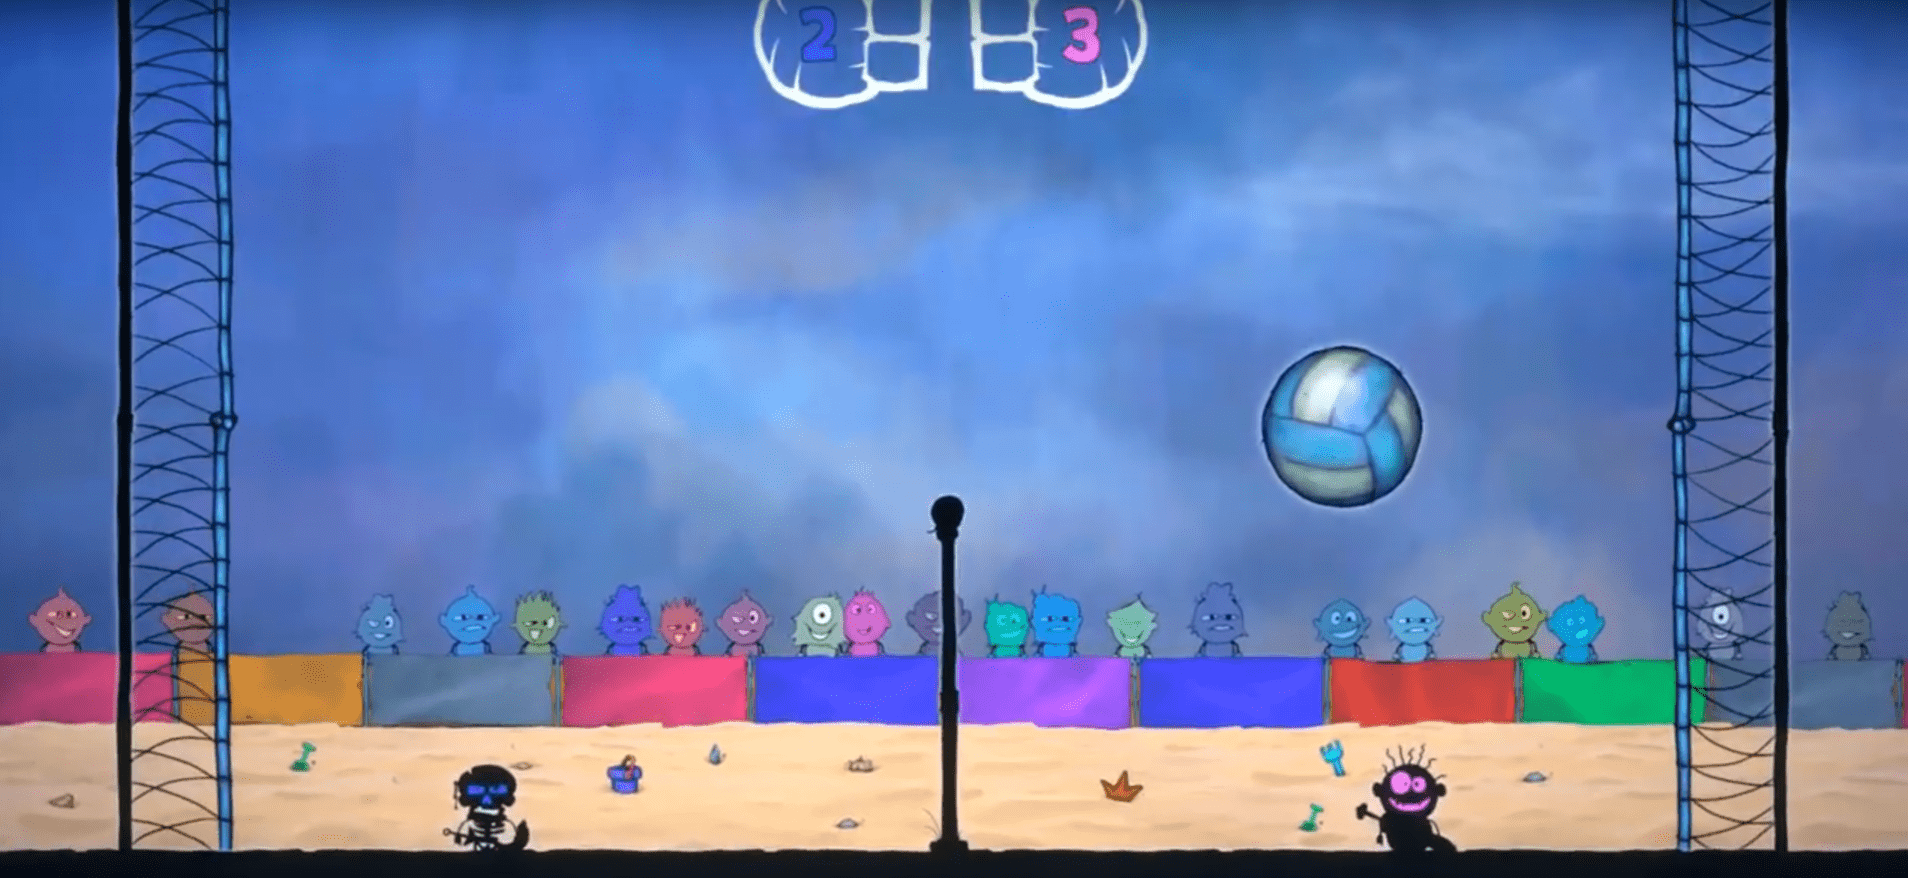 Bouncy Bob 2 Is A Crazy, Highly Replayable Party Game That's Coming To Nintendo Switch This Month